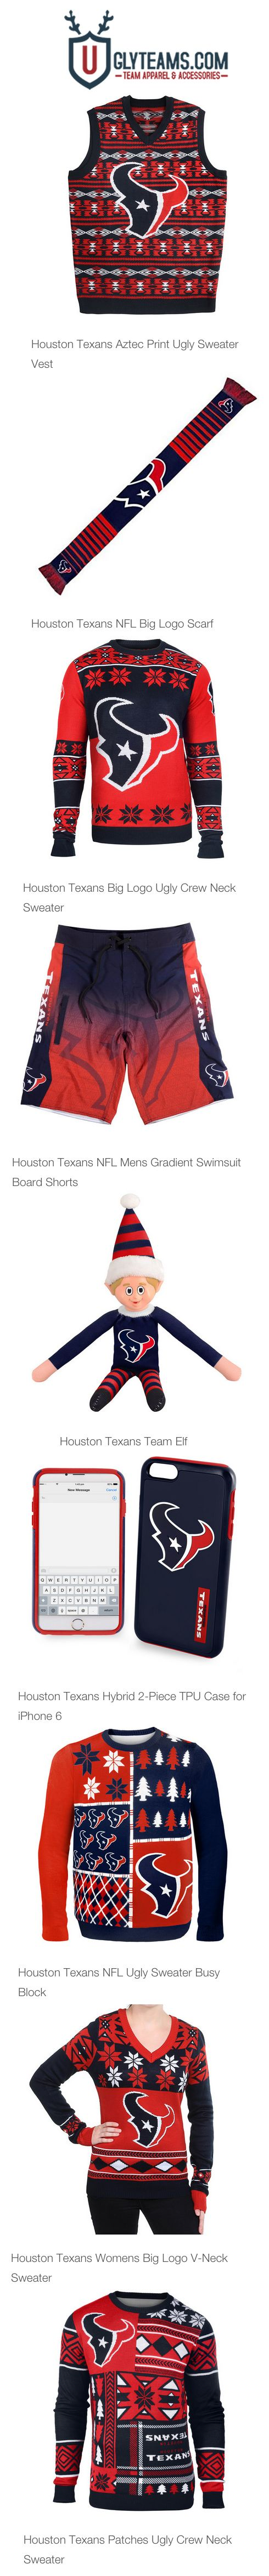 Houston texans ultimate fan gift guide from uglyteams com